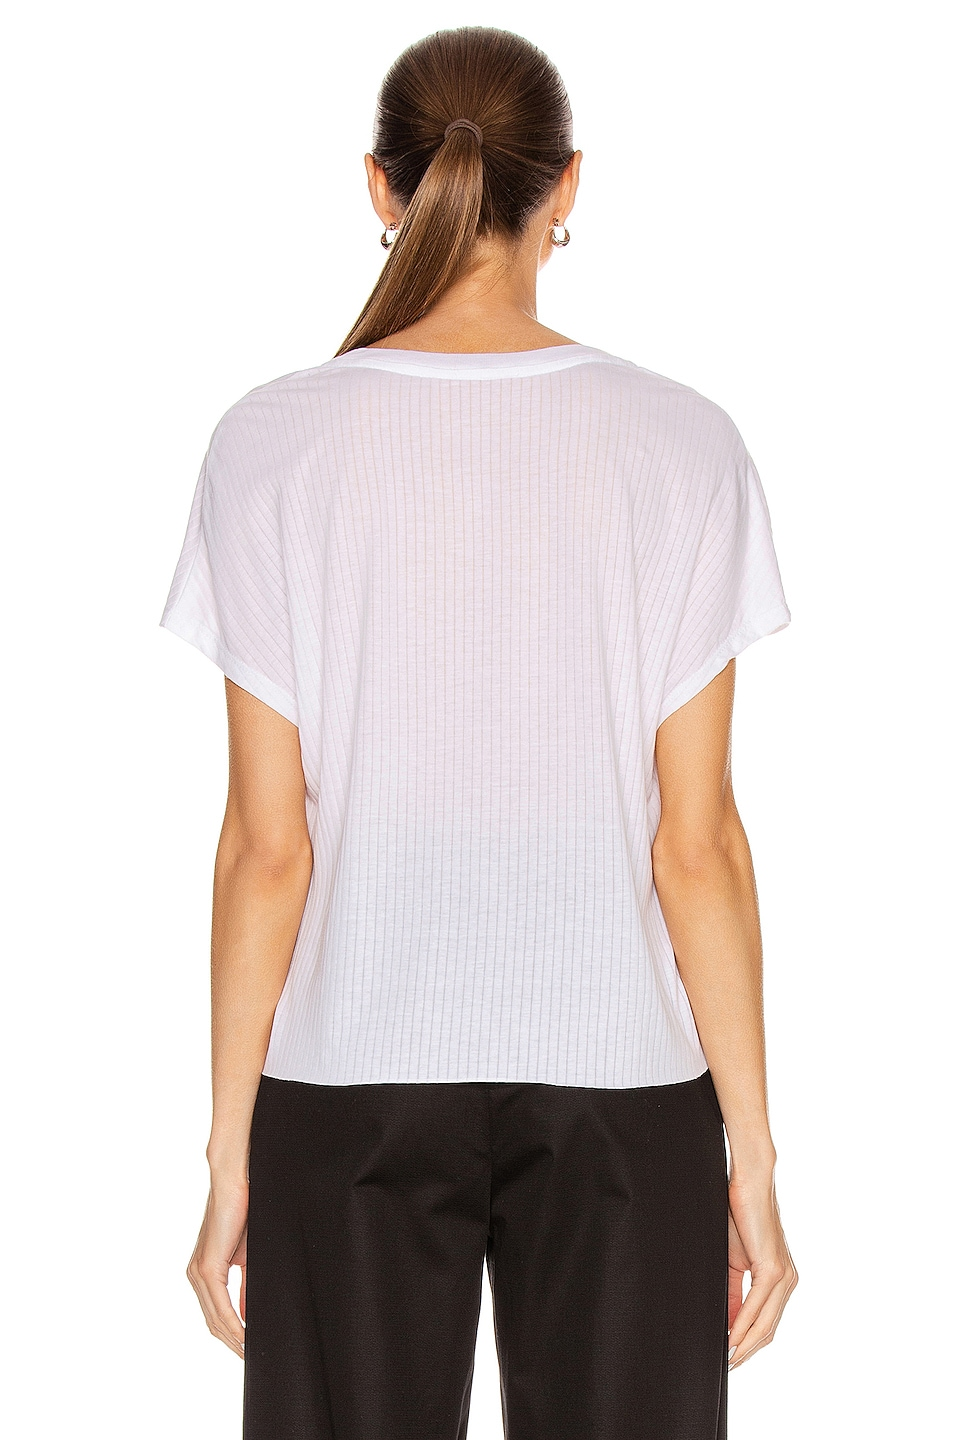 Image 3 of The Range Split Jersey Short Sleeve V Tee in White